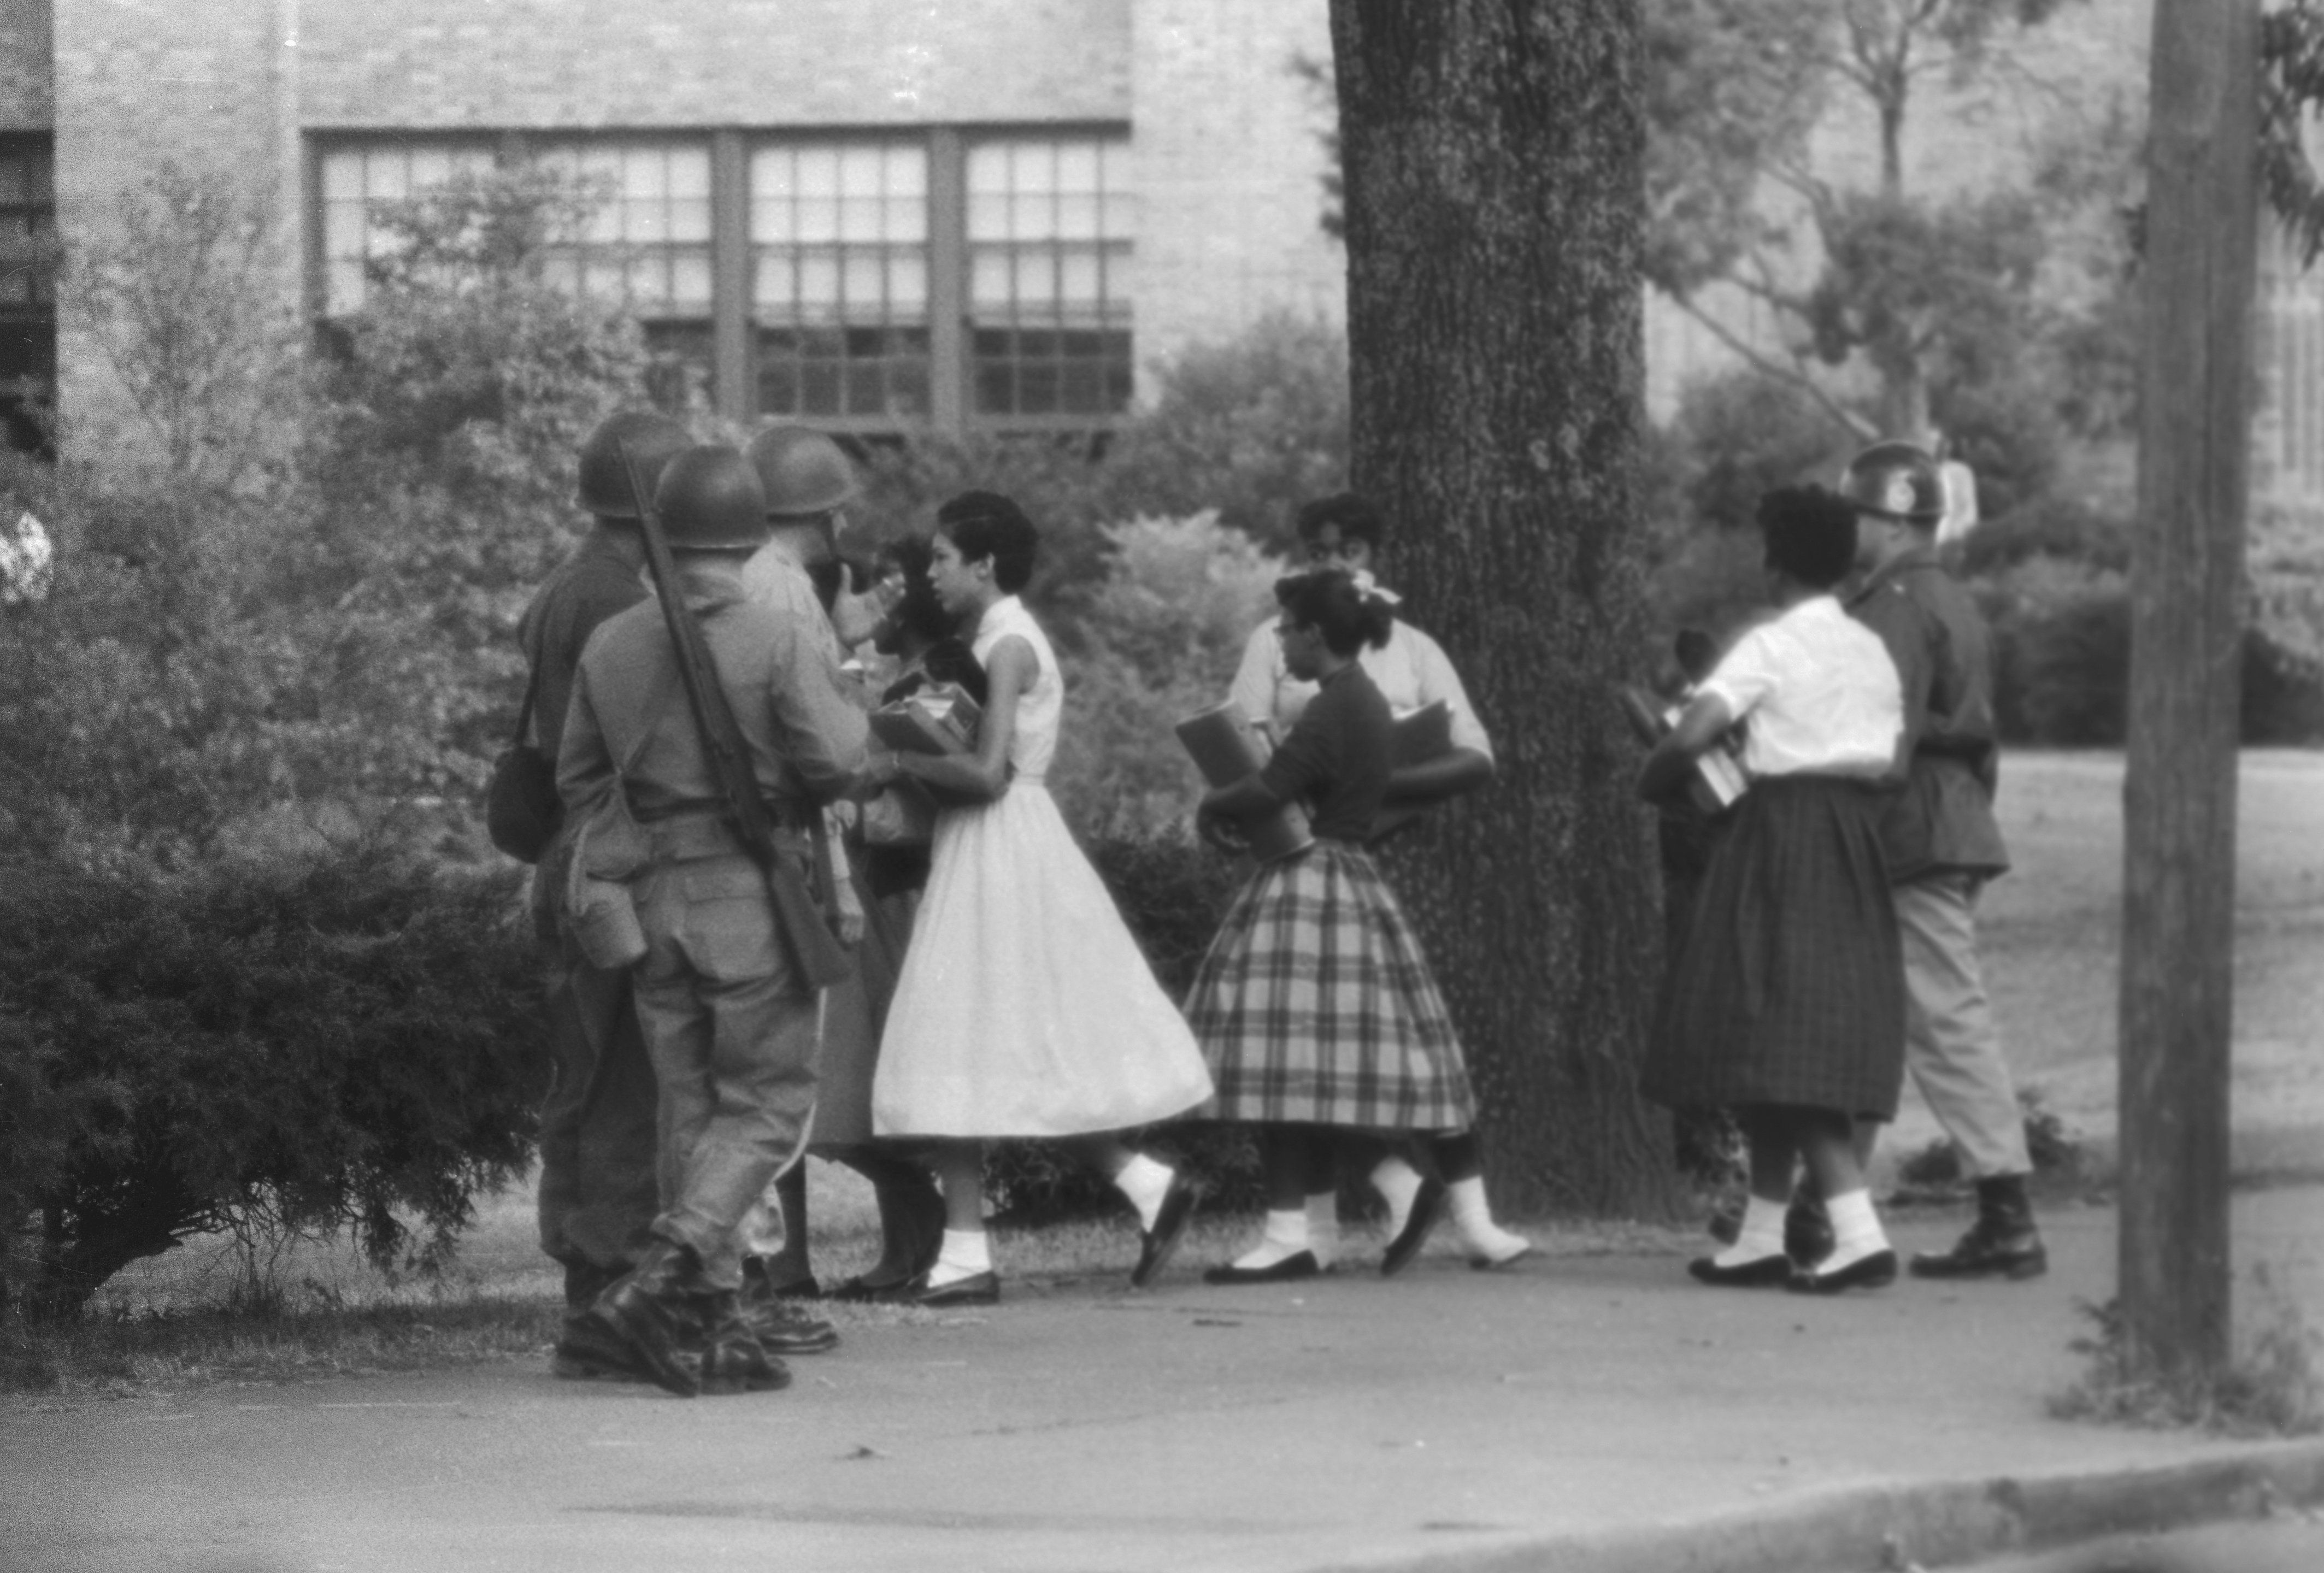 School Apologizes After Little Rock 9 Exercise Brings Up Trauma For Black Child